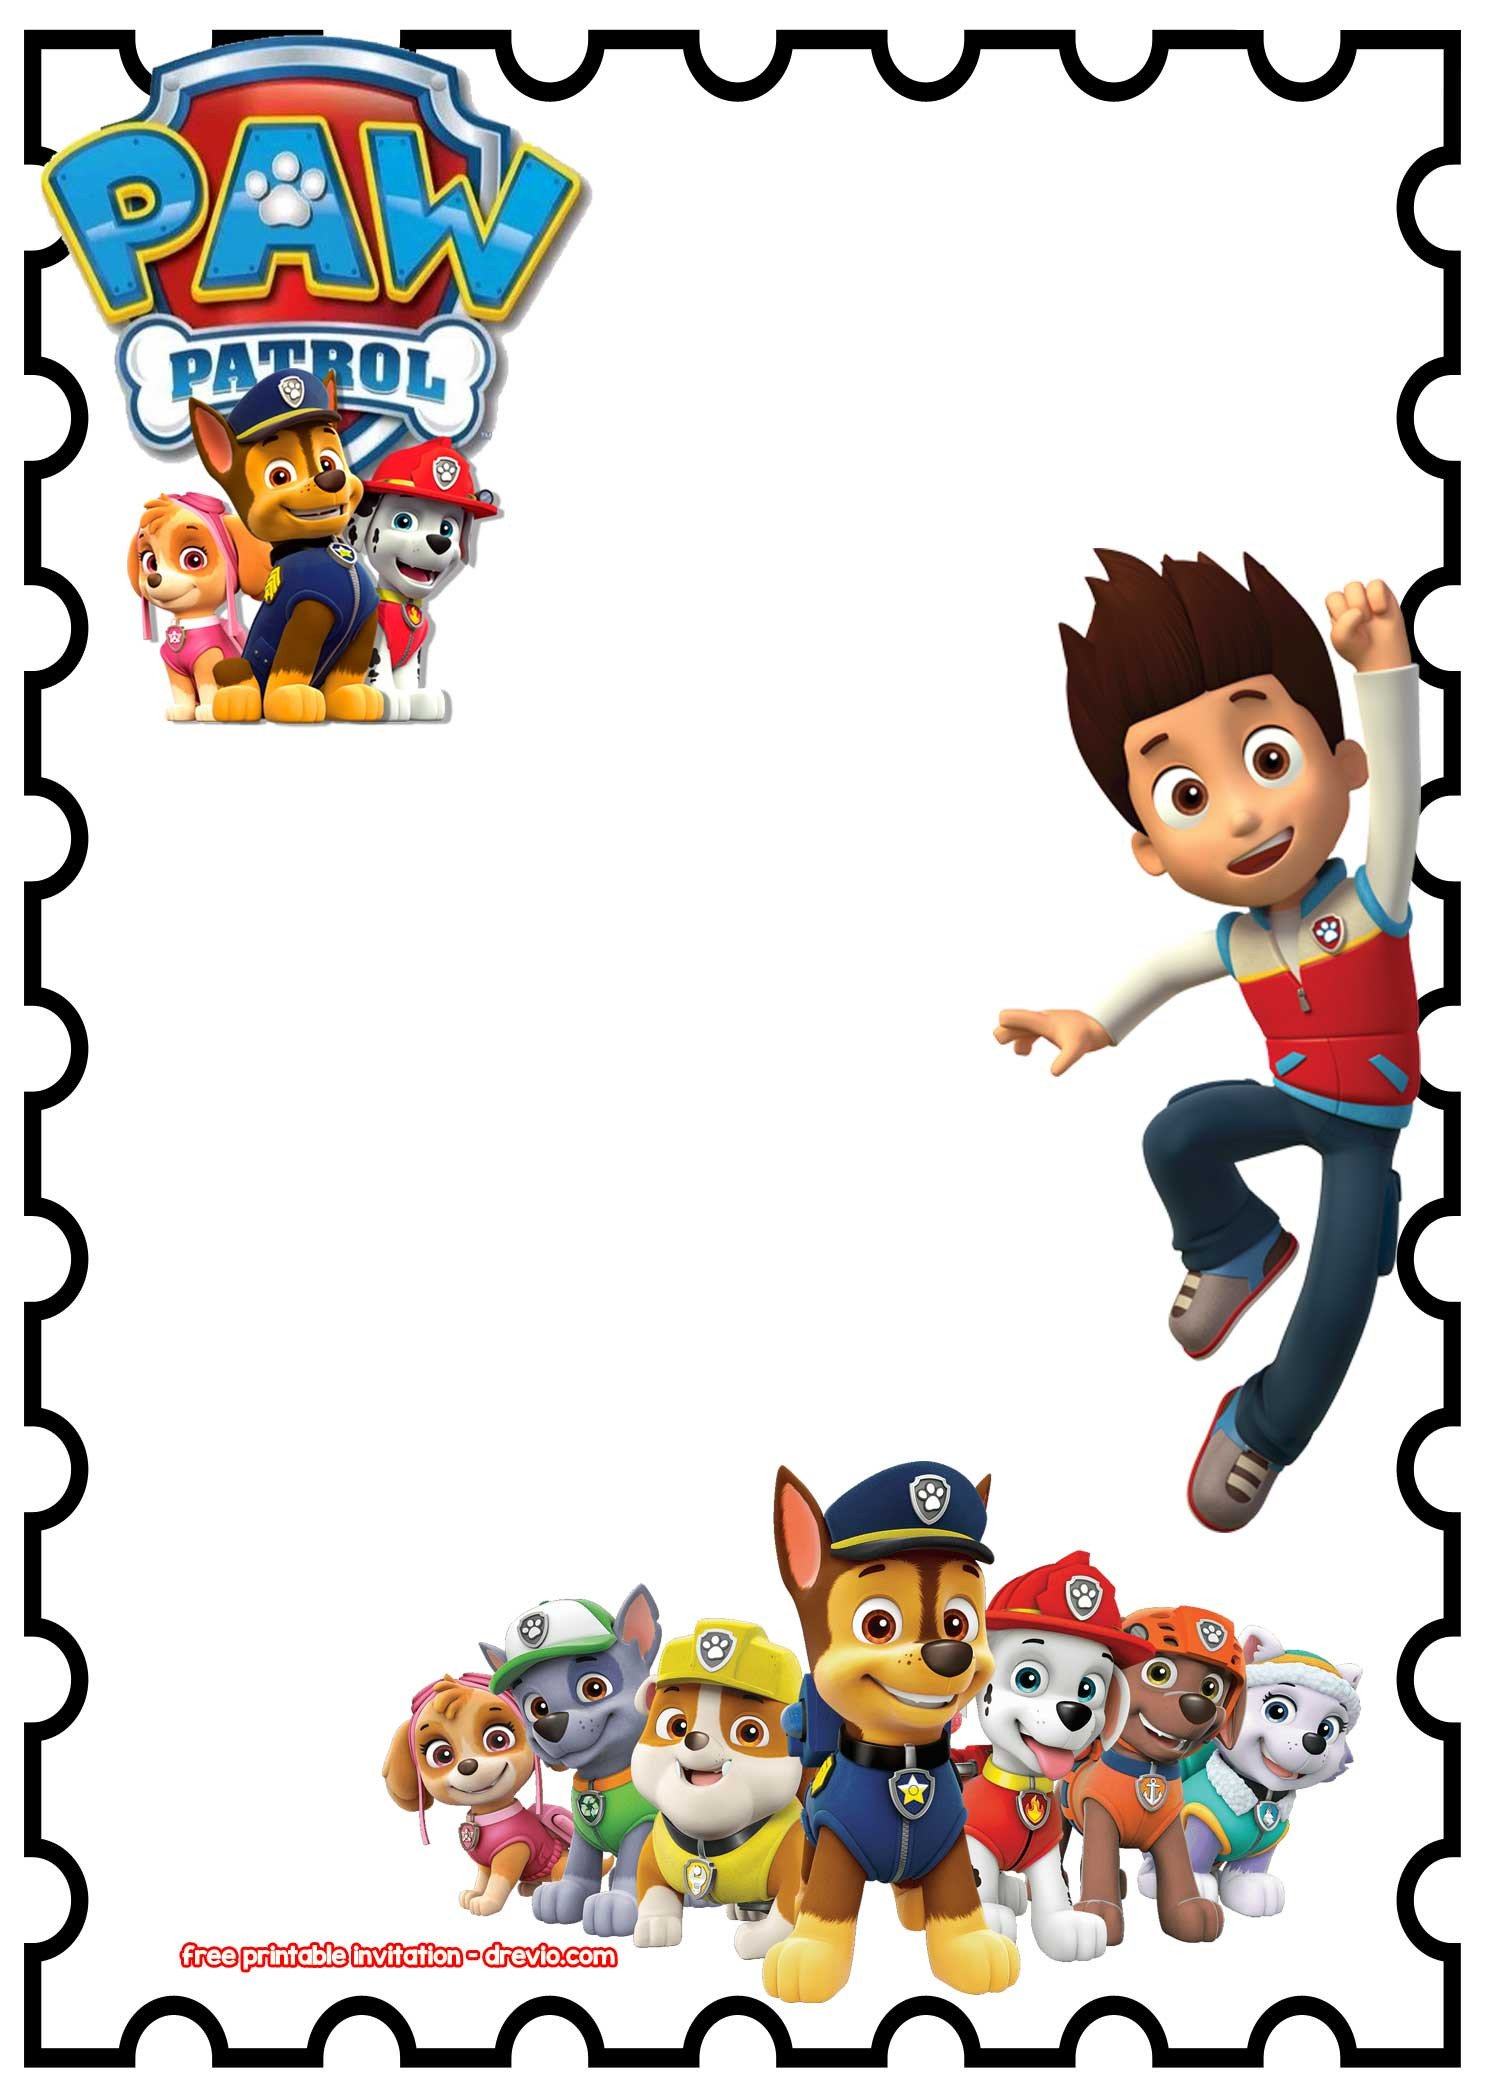 Free Paw Patrol Invitation Template Free Printable Paw Patrol Birthday Invitation Chalkboard